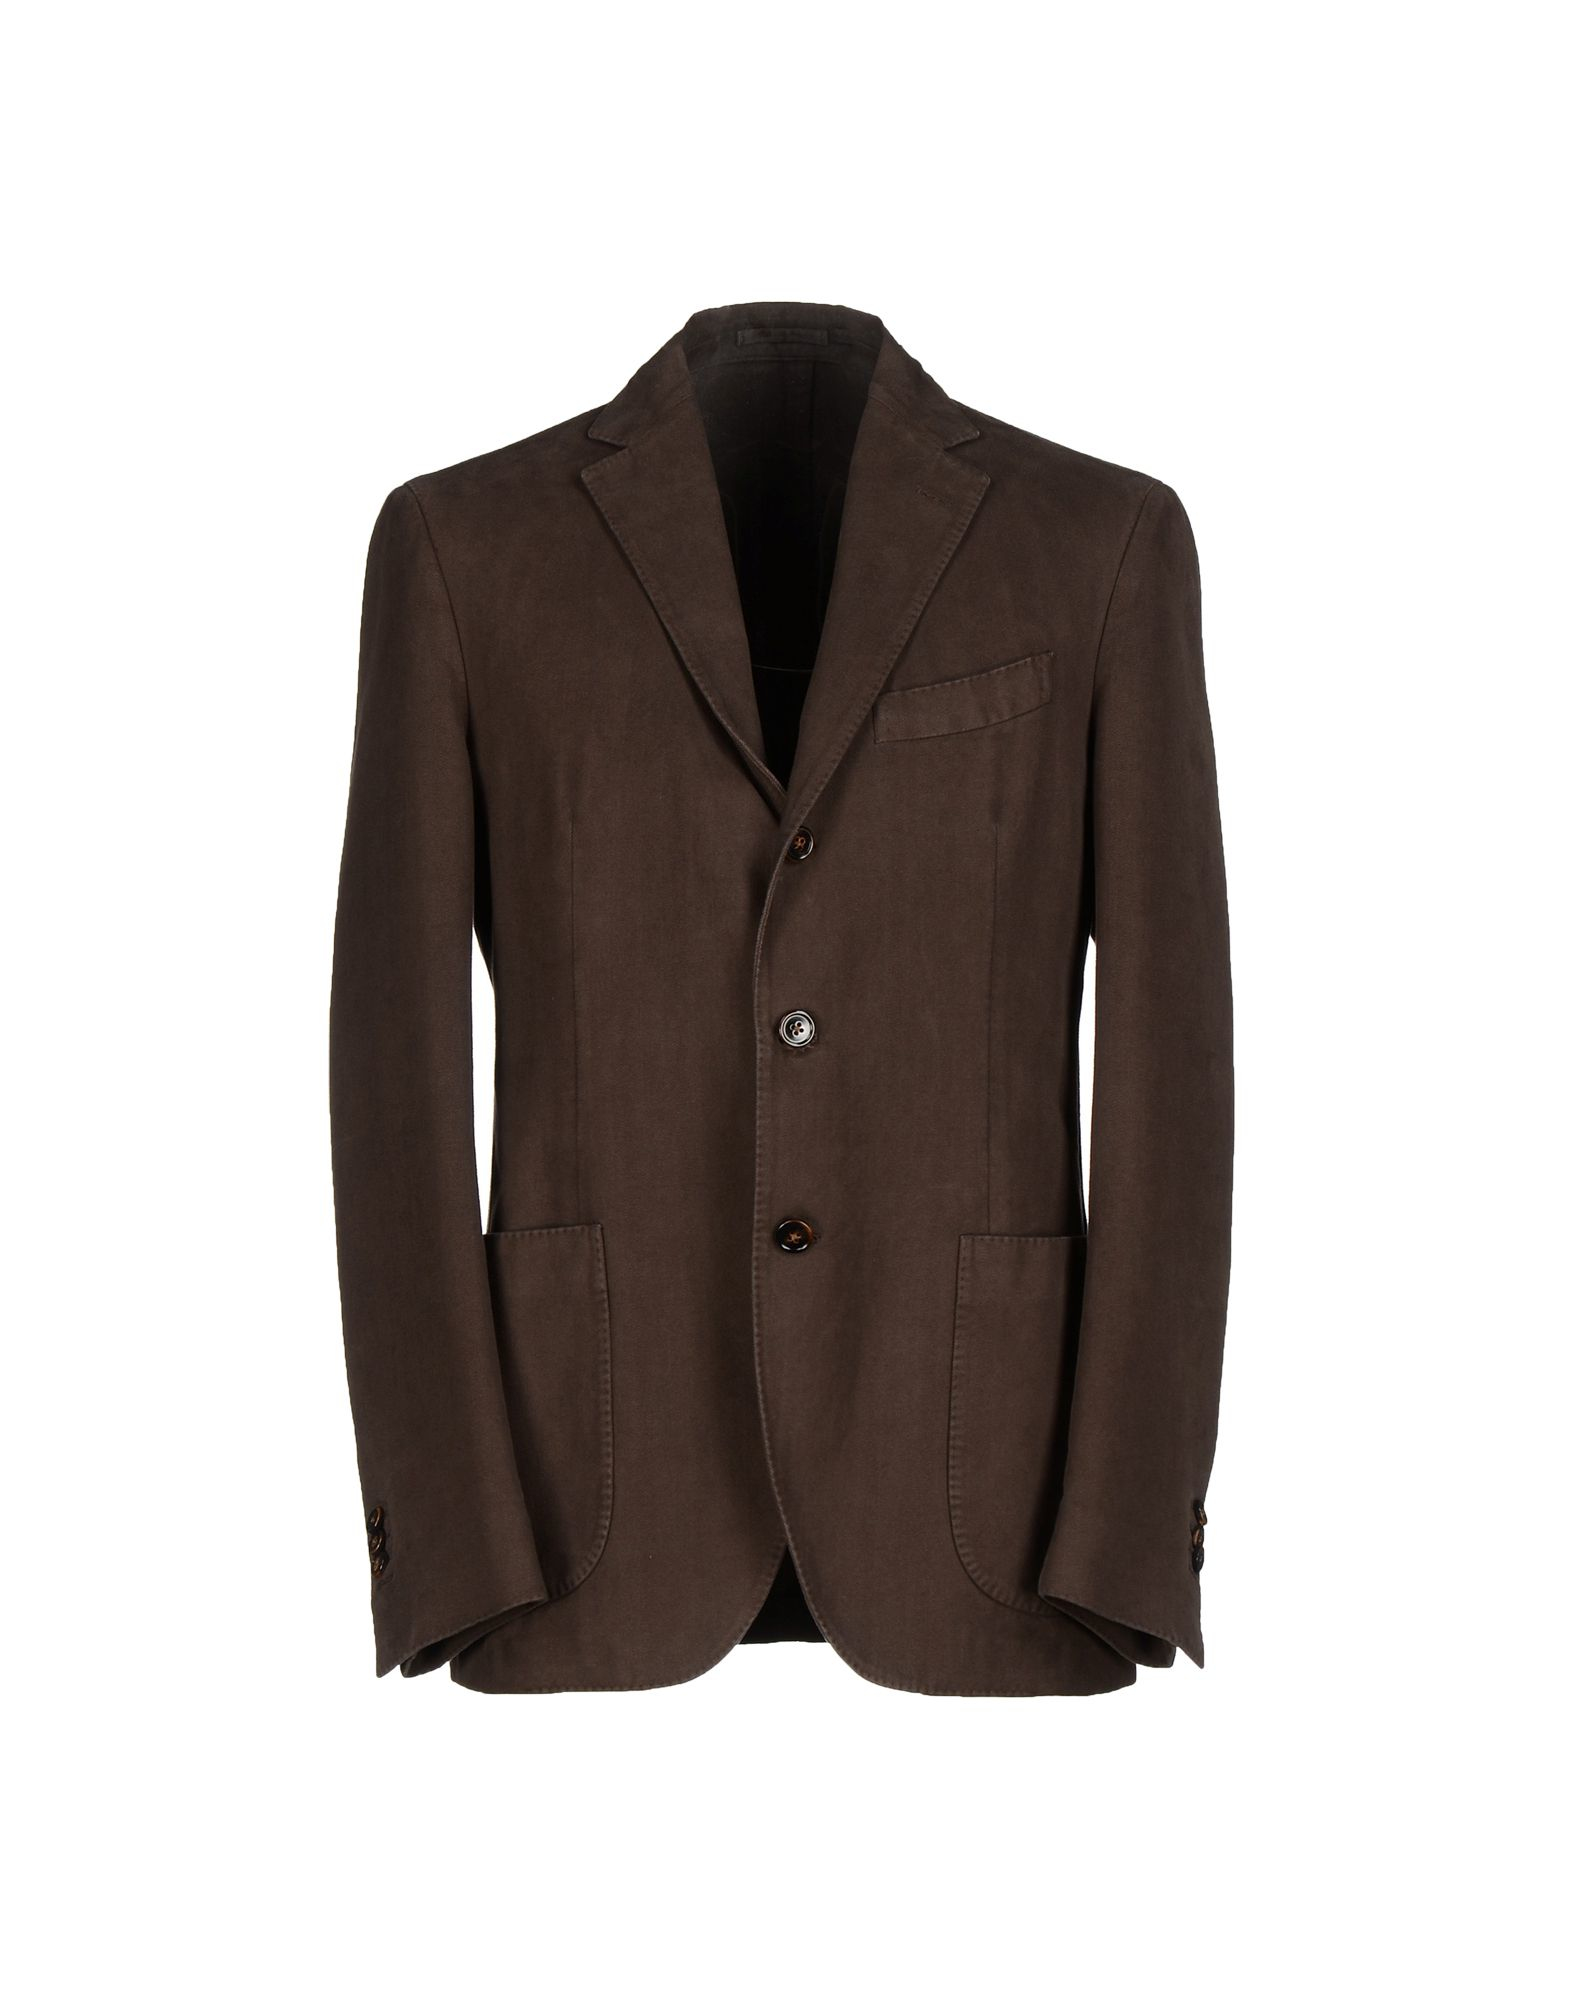 Lyst - Lardini Blazer In Brown For Men